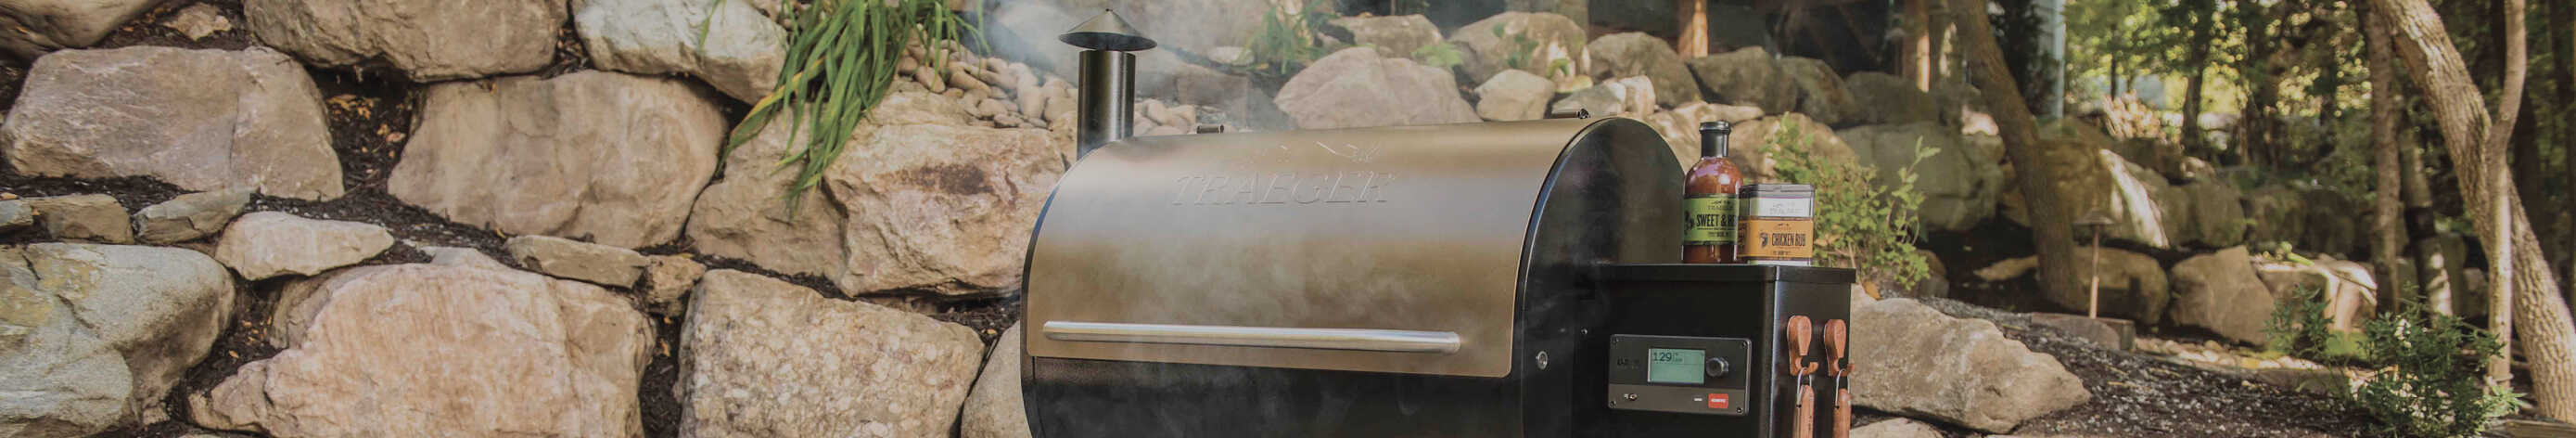 new trager smokers grills for sale near lloydminster canada